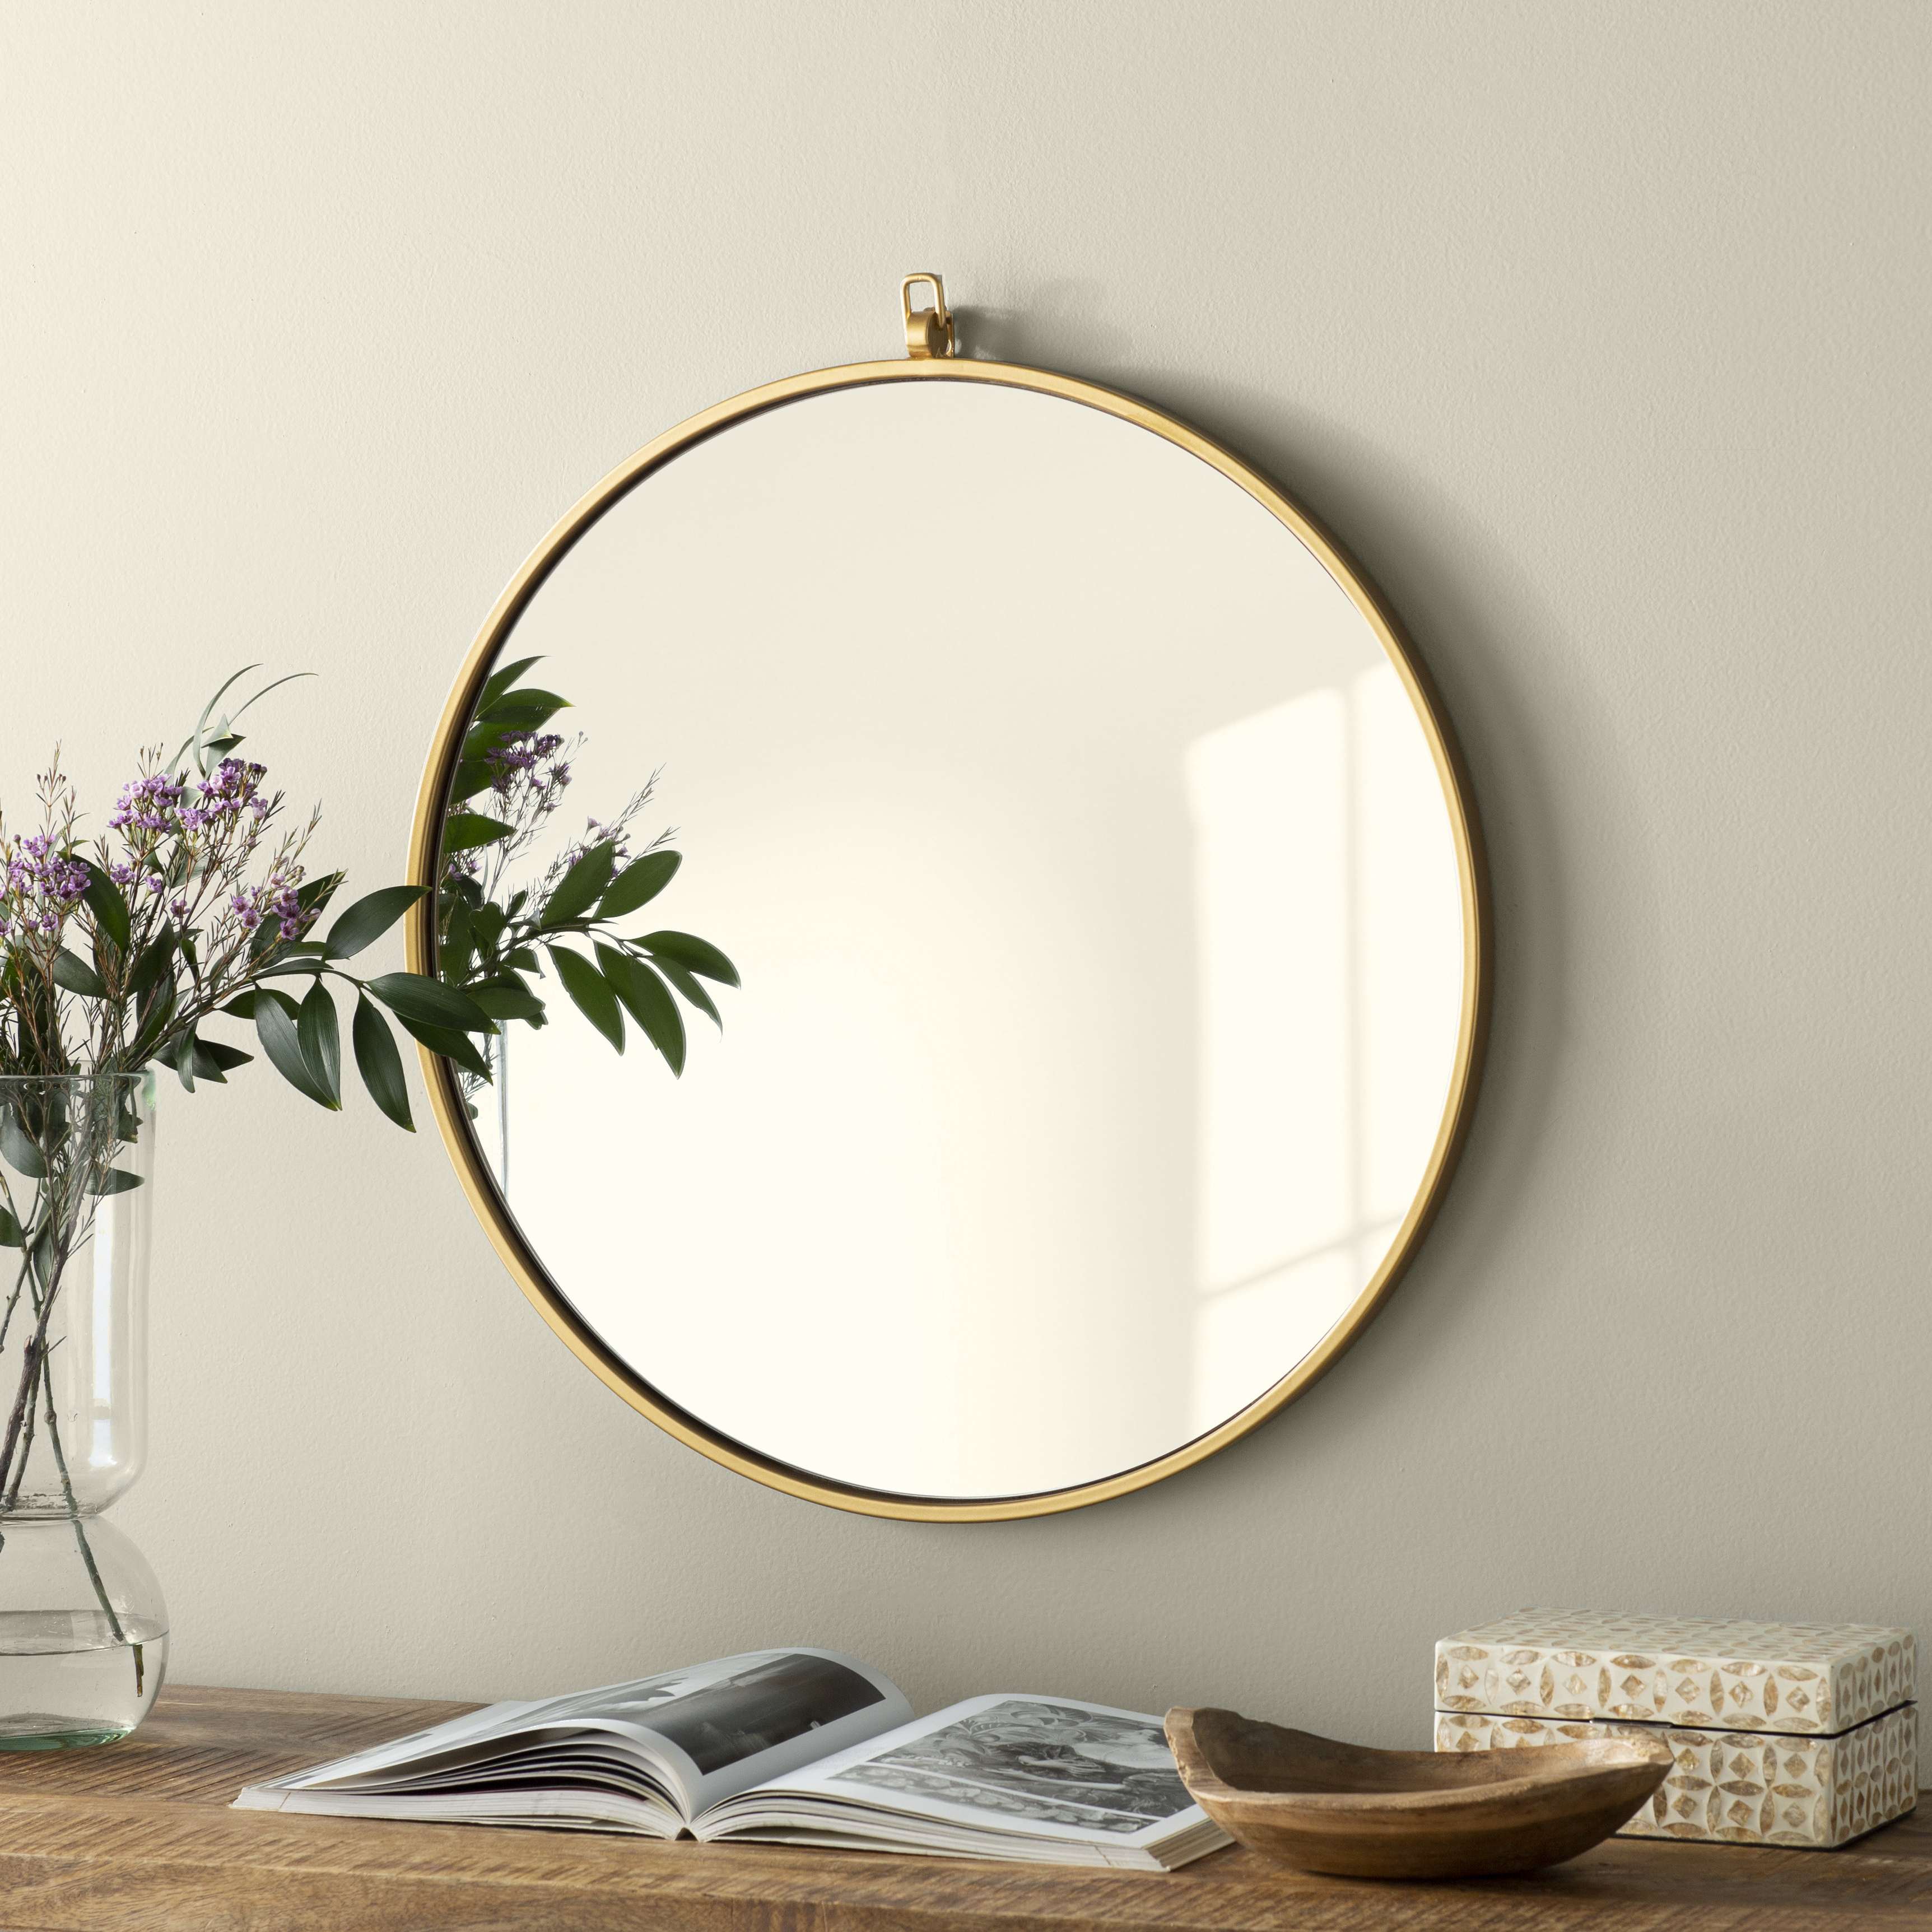 Rhein Accent Mirrors Pertaining To Famous Joss & Main Essentials Accent Mirror (View 6 of 20)